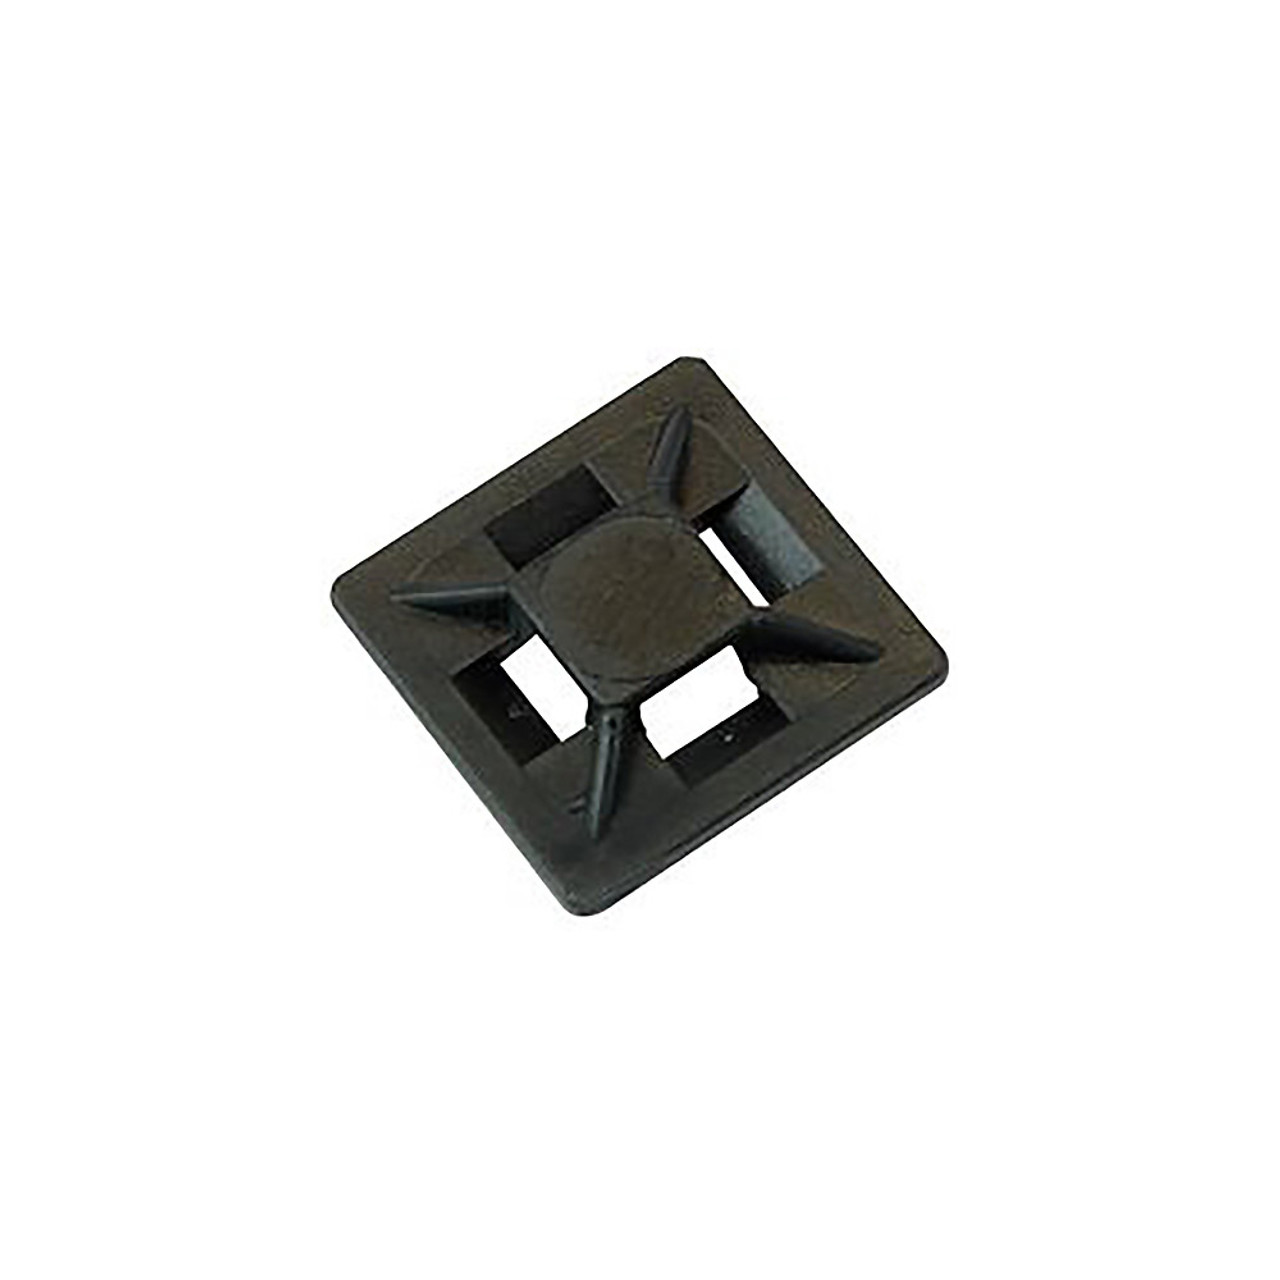 2c36d1ac896a HFC1/4 Self-adhesive Cable Tie Mounts, 0.8 x 0.8in (20 x 20mm ...